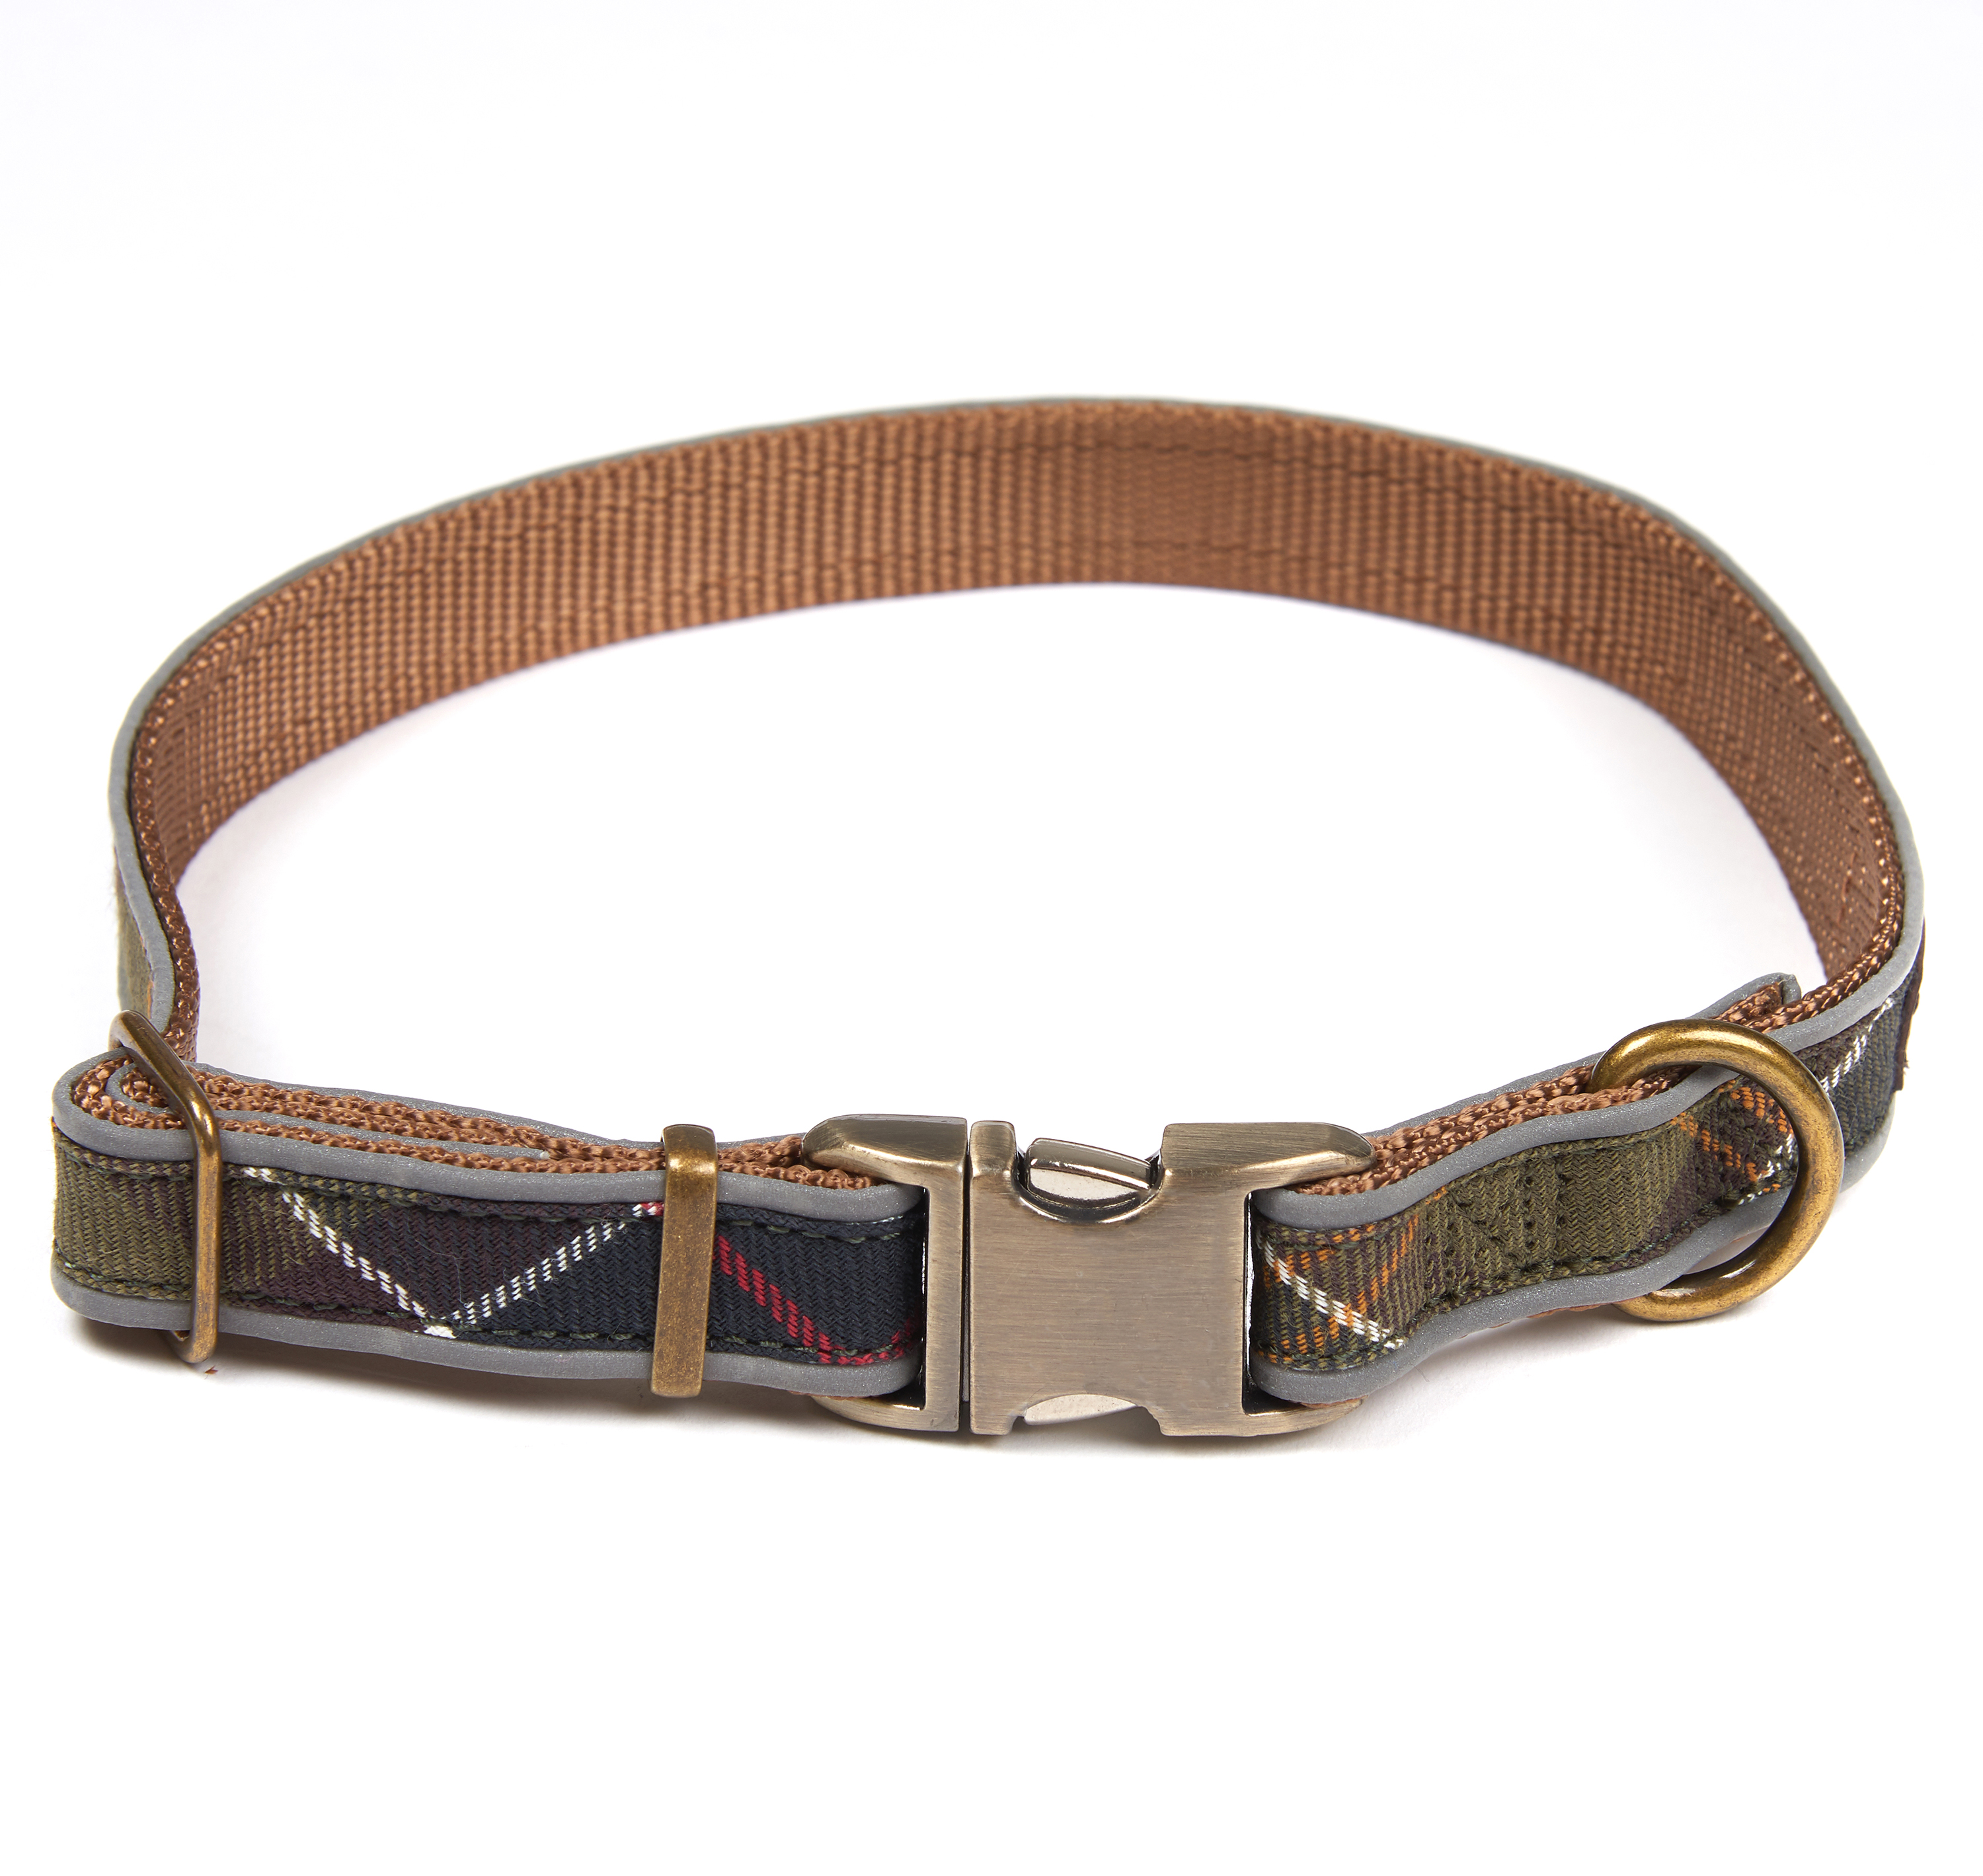 Reflective Tartan Dog Collar - Illustration n°2